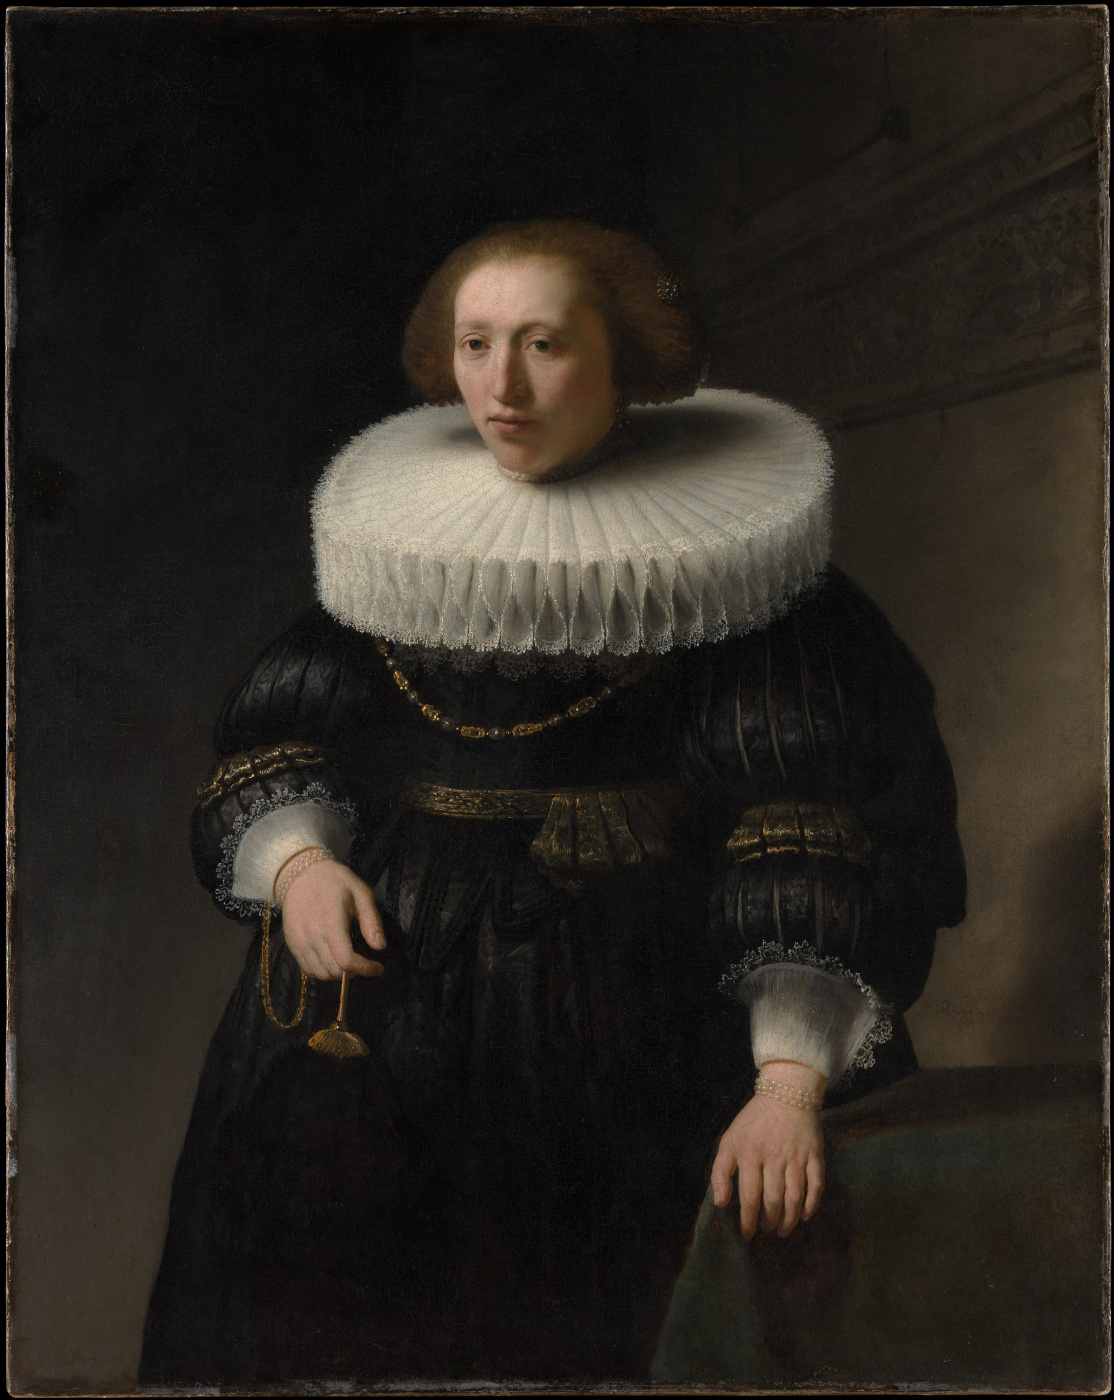 Rembrandt Harmenszoon van Rijn. Portrait of a lady, probably from the family van Beresteyn